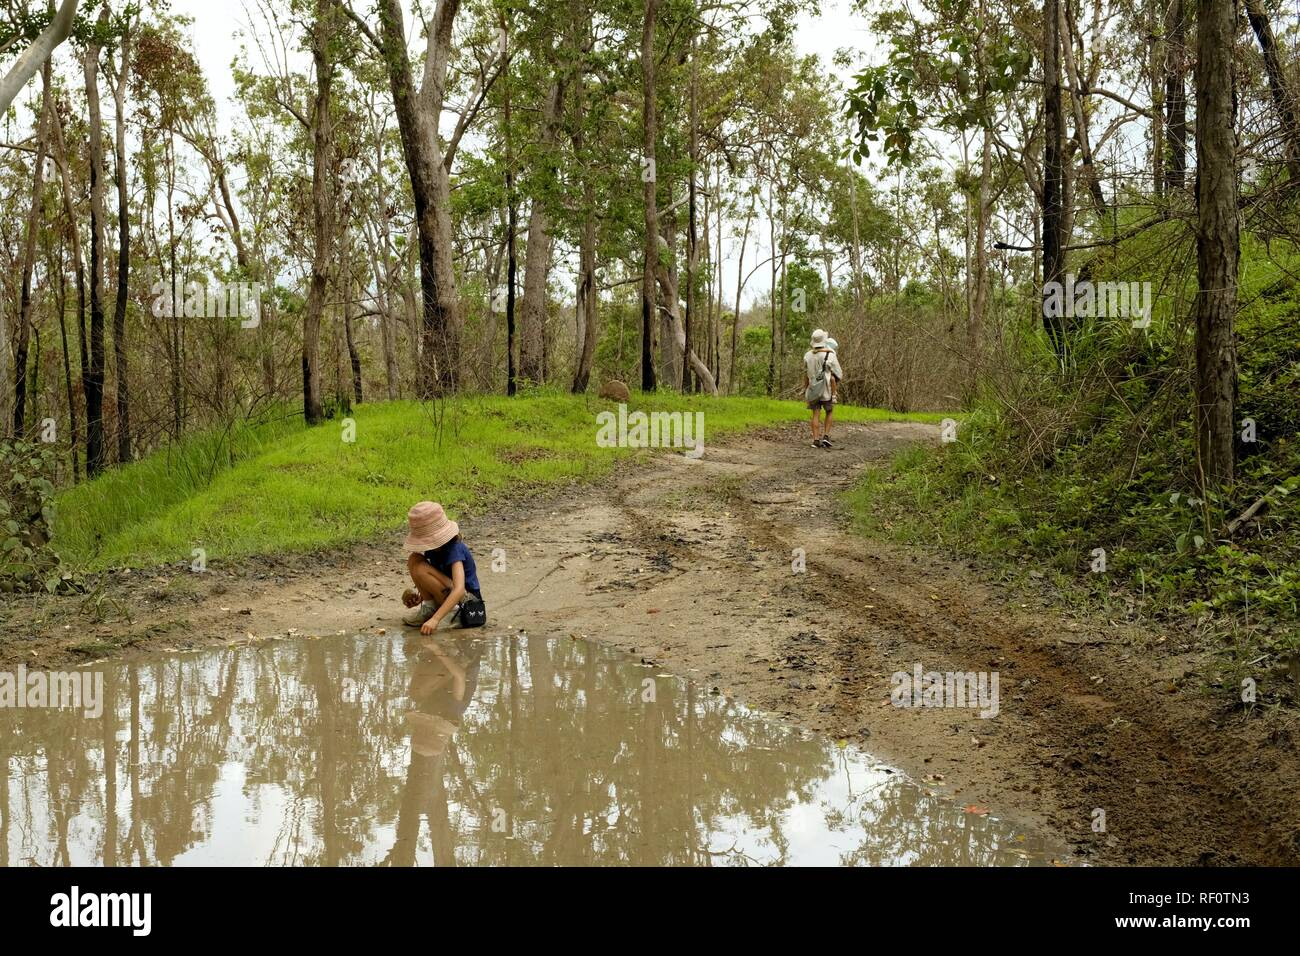 A child plays in a muddy puddle along a four wheel drive track through a forest, Mia Mia State Forest, Queensland, Australia Stock Photo